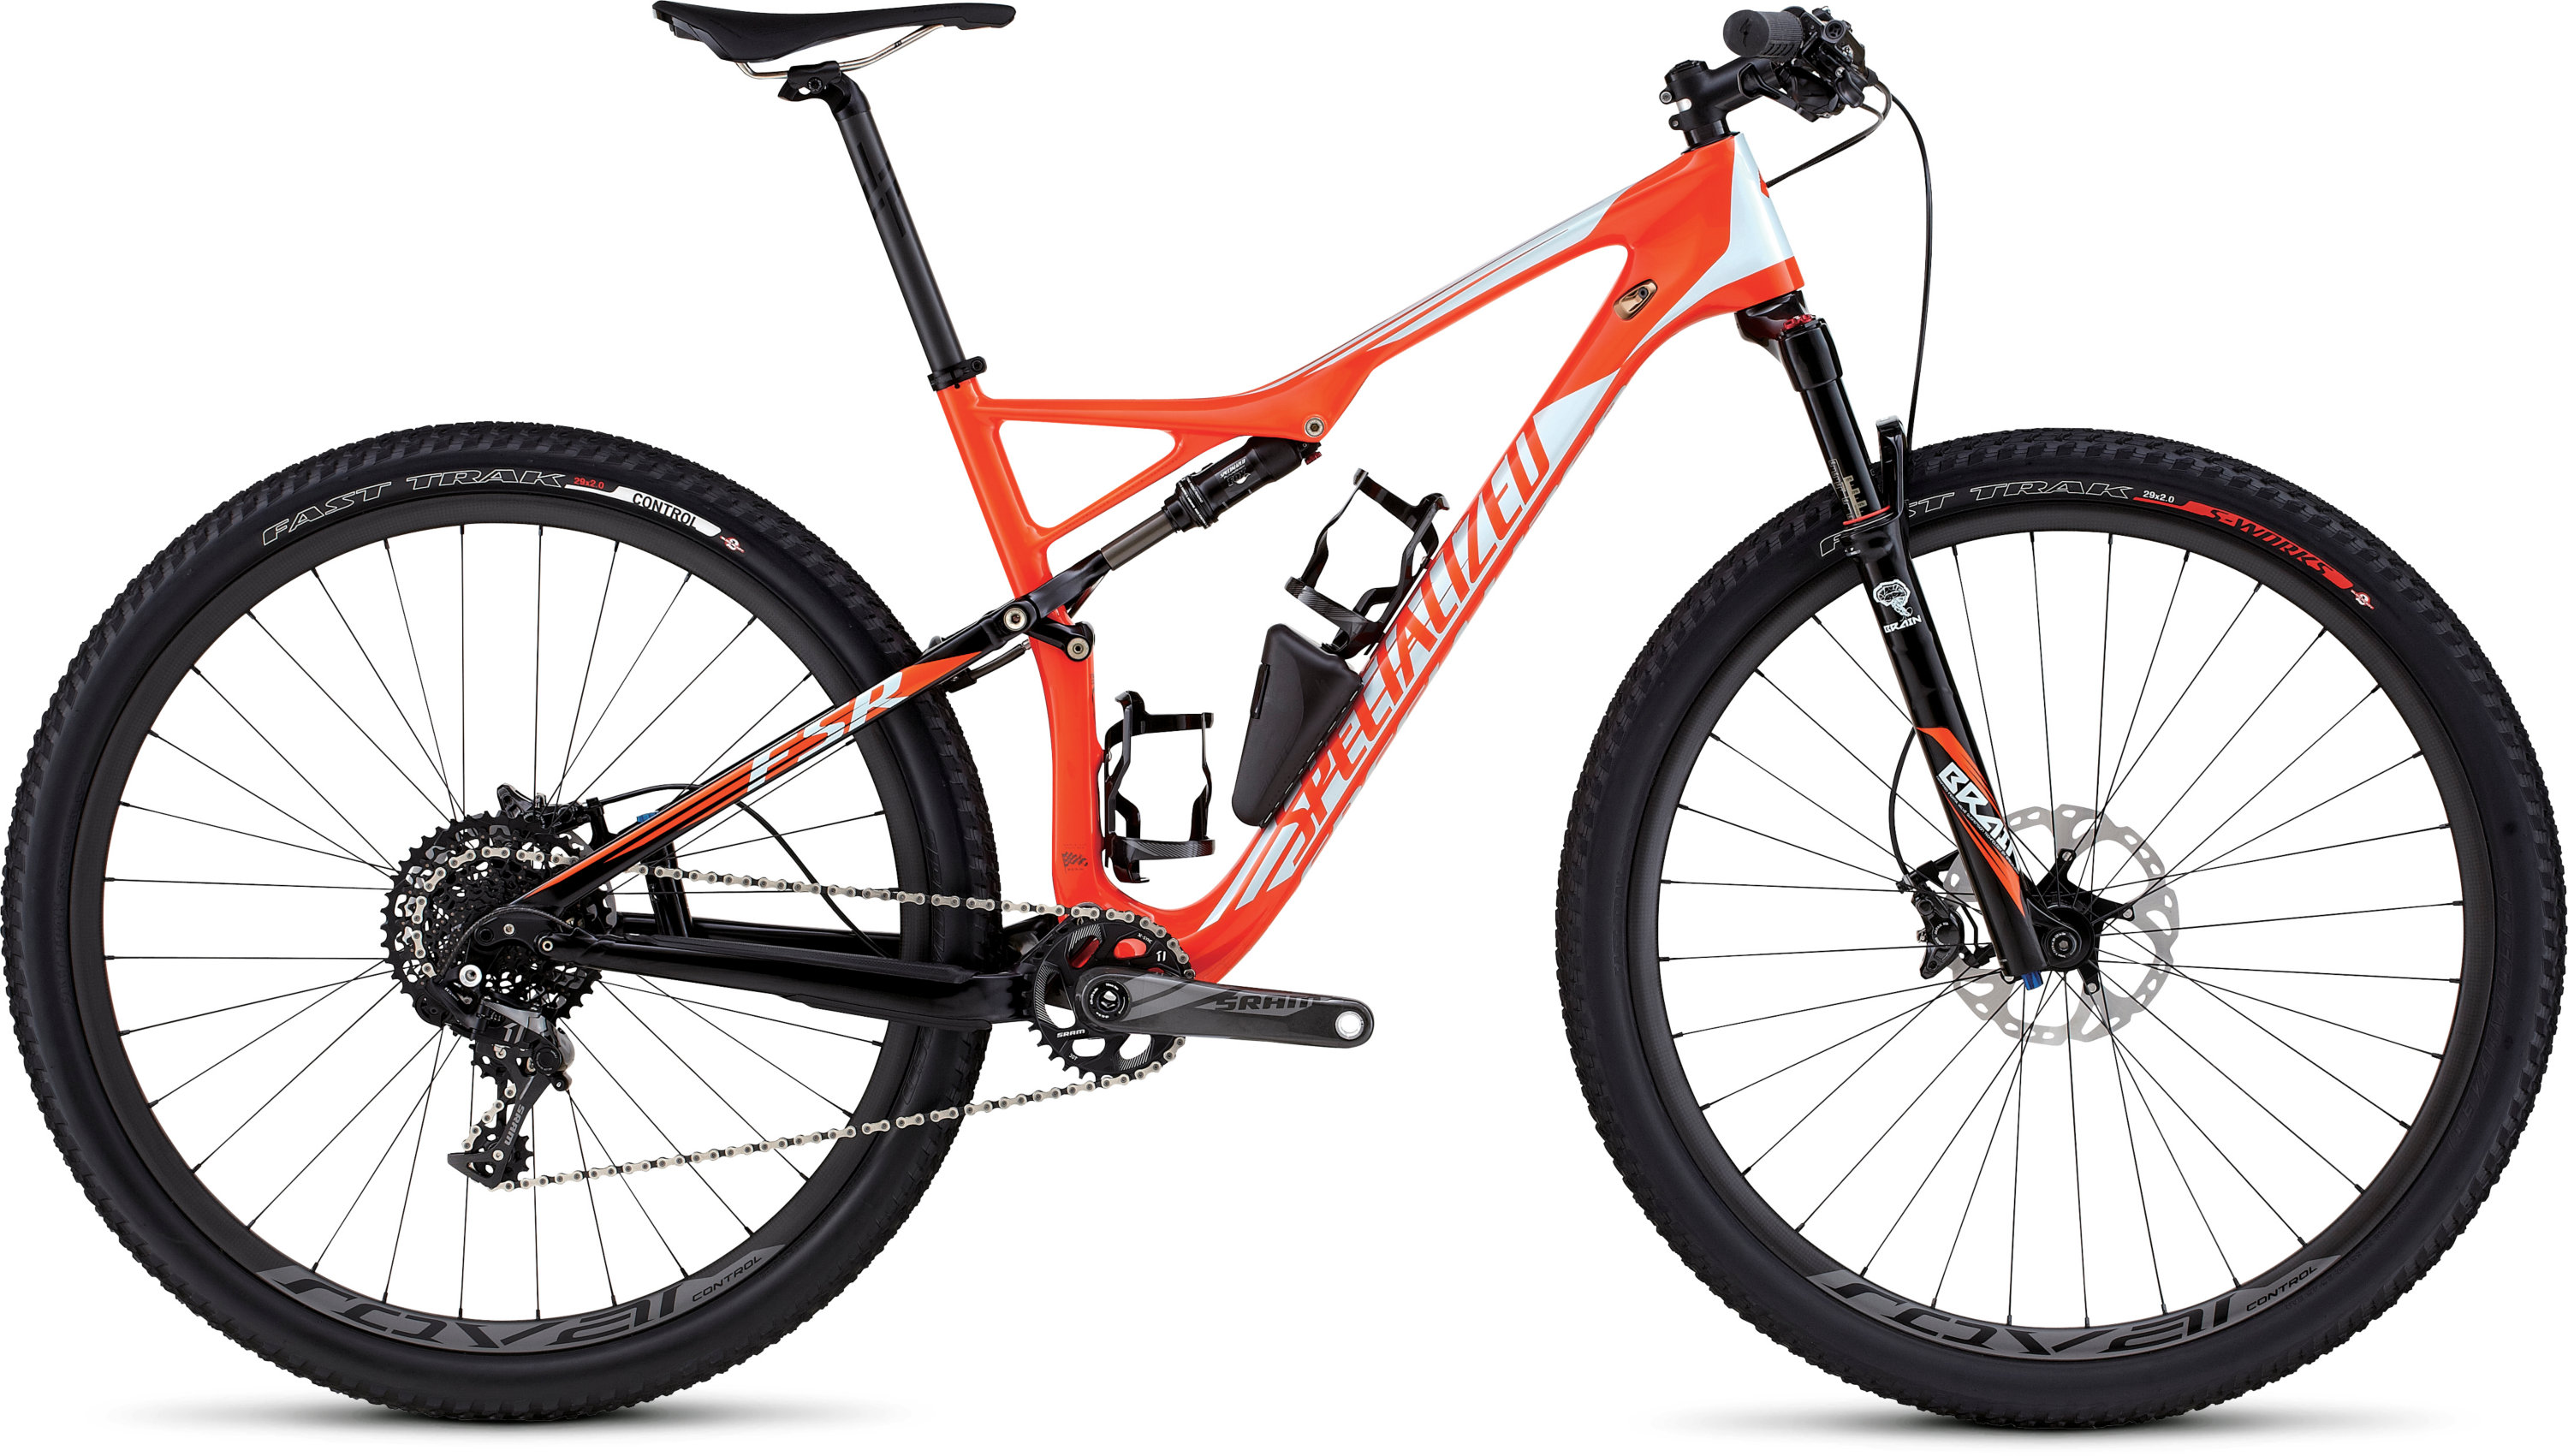 SPECIALIZED EPIC FSR EXPERT CARBON WC 29 MXORG/BBYBLU S - Bikedreams & Dustbikes